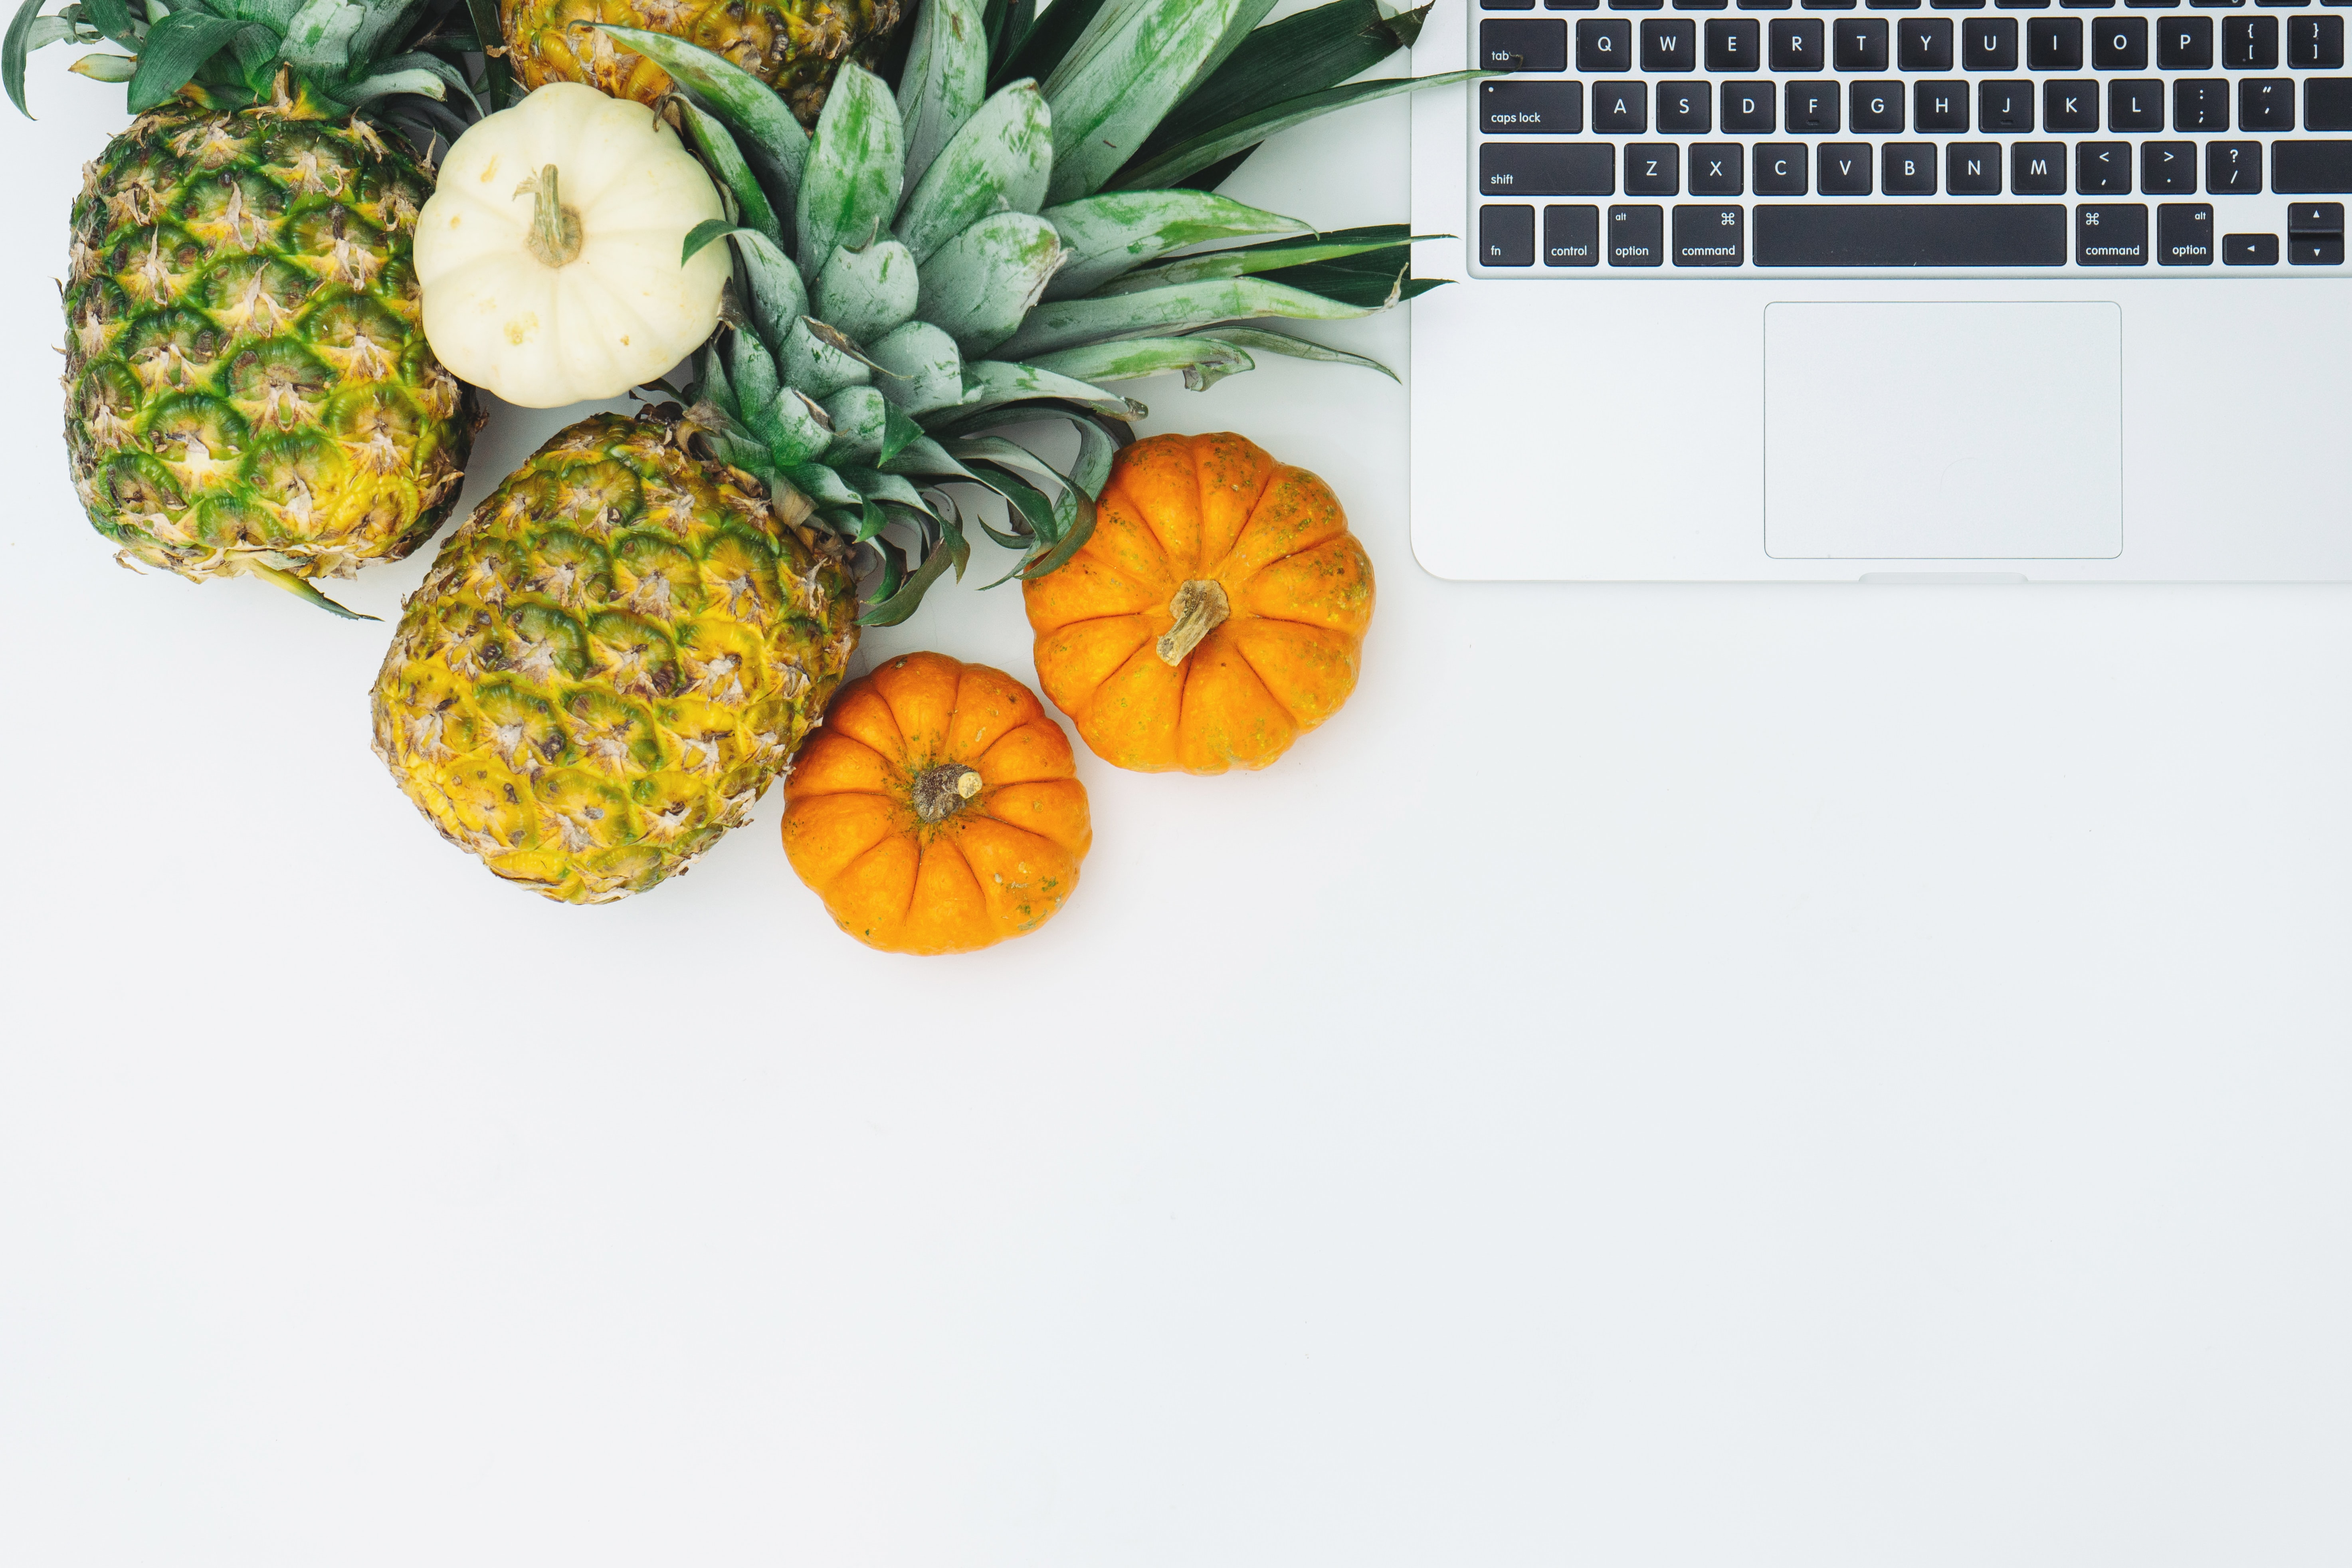 Top view of pineapples and miniature pumpkins and a Macbook.